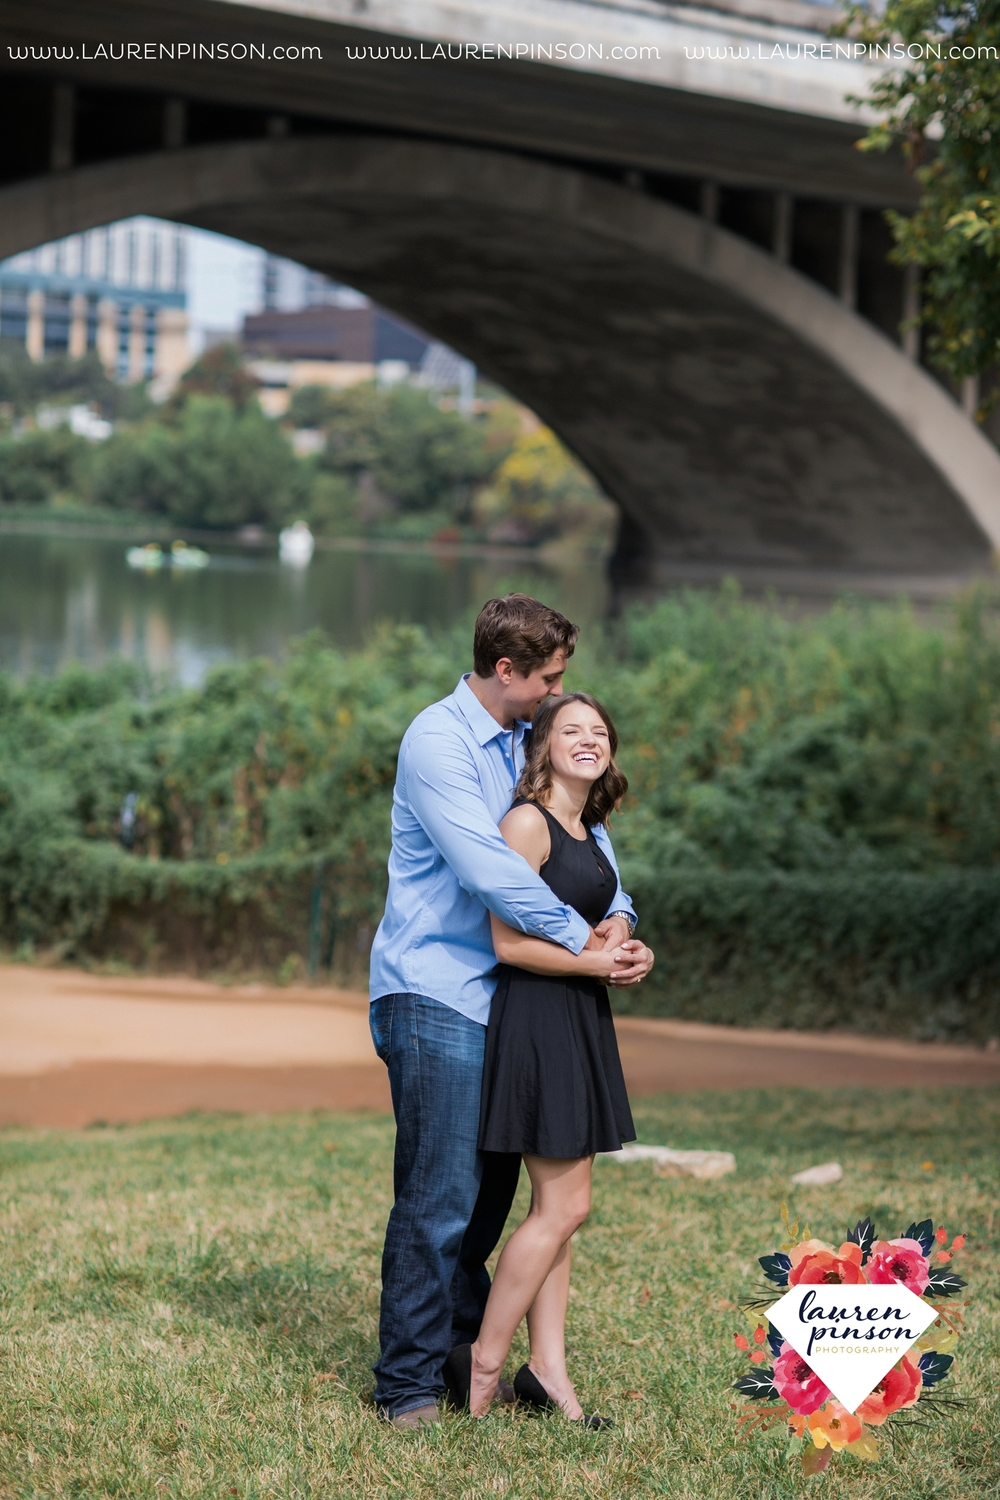 austin-texas-engagement-session-photography-by-wichita-falls-wedding-photgraphy-lauren-pinson_1401.jpg